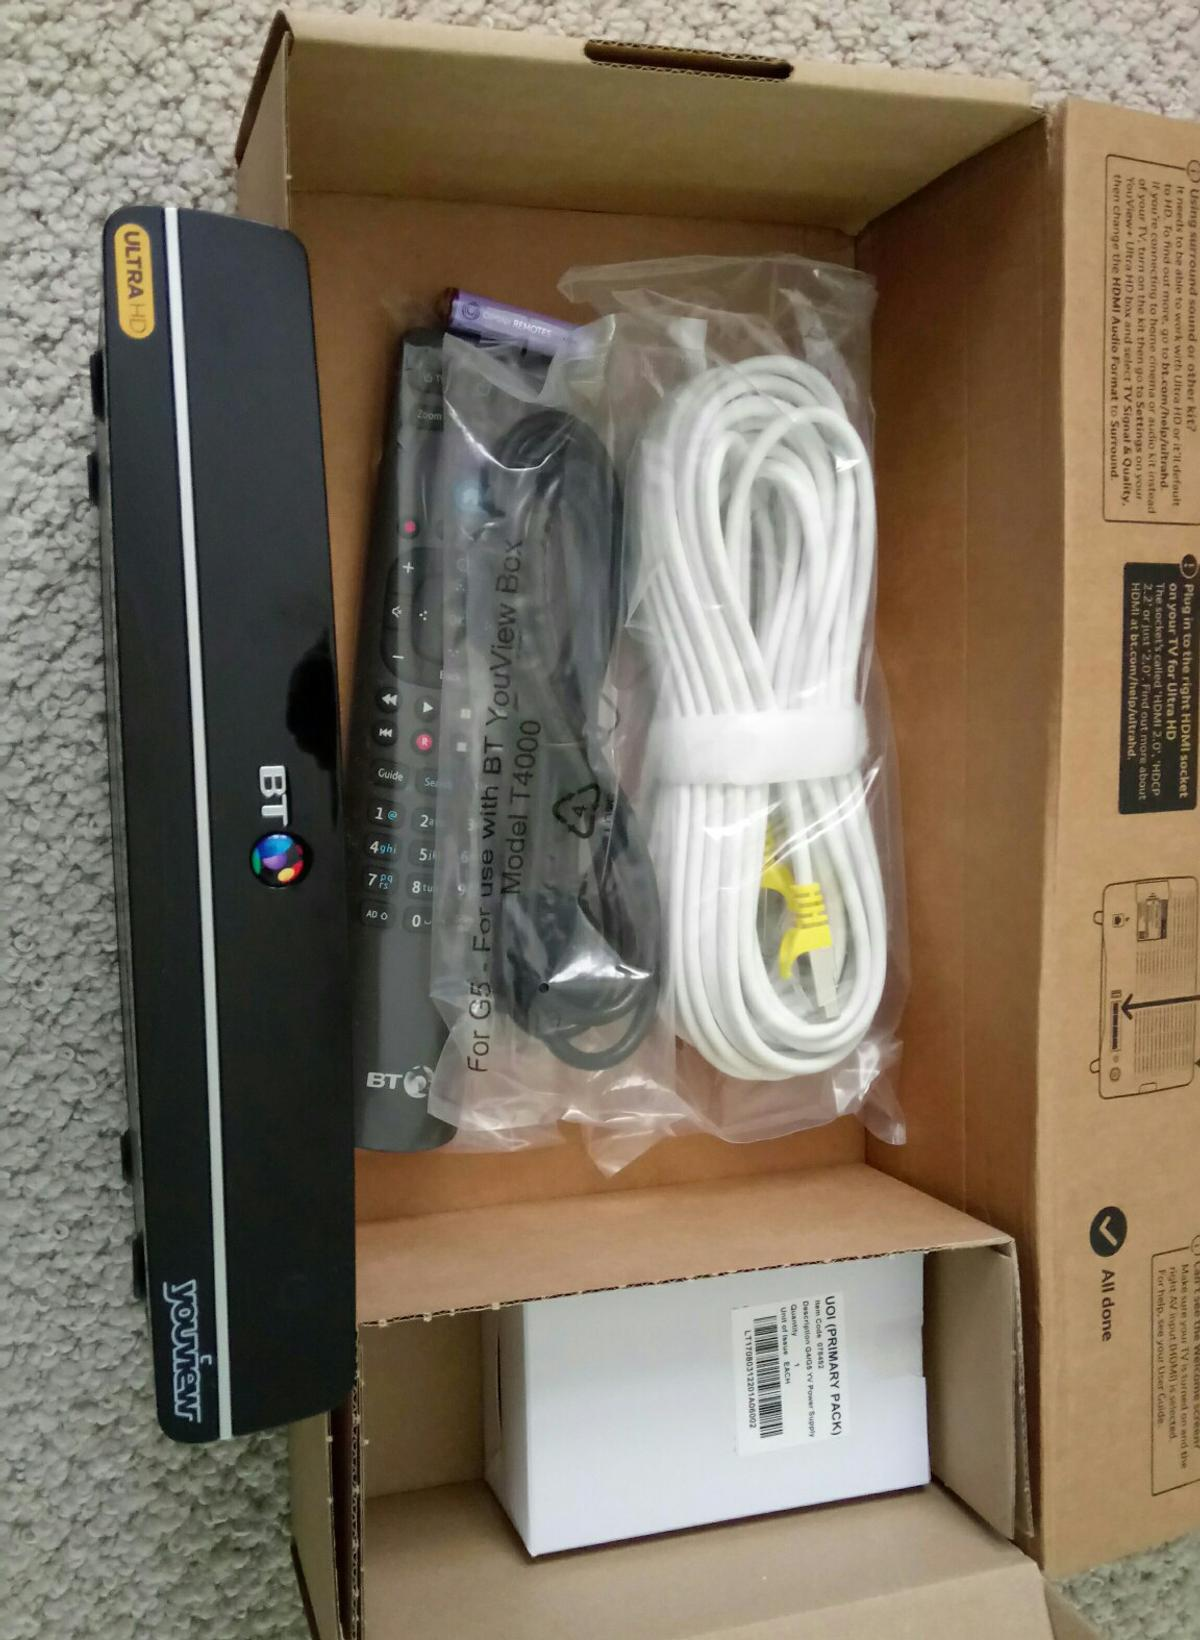 Magnificent Bt Youview Box 1 Tb In Dl17 Cornforth For 30 00 For Sale Shpock Wiring Cloud Hisonuggs Outletorg